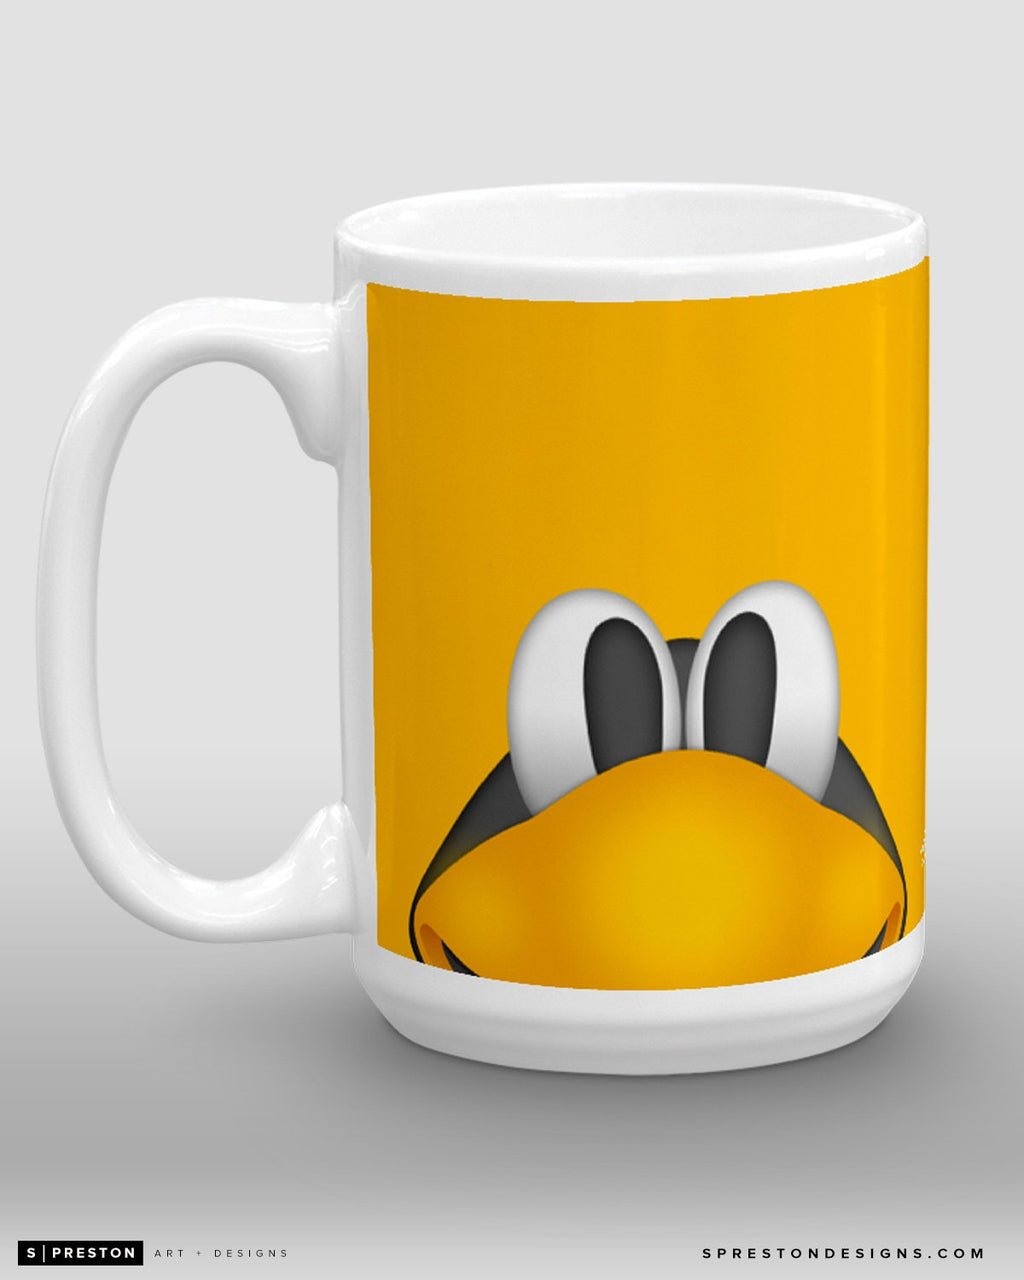 Minimalist Iceburgh Coffee Mug - NHL Licensed - Pittsburgh Penguins Mascot